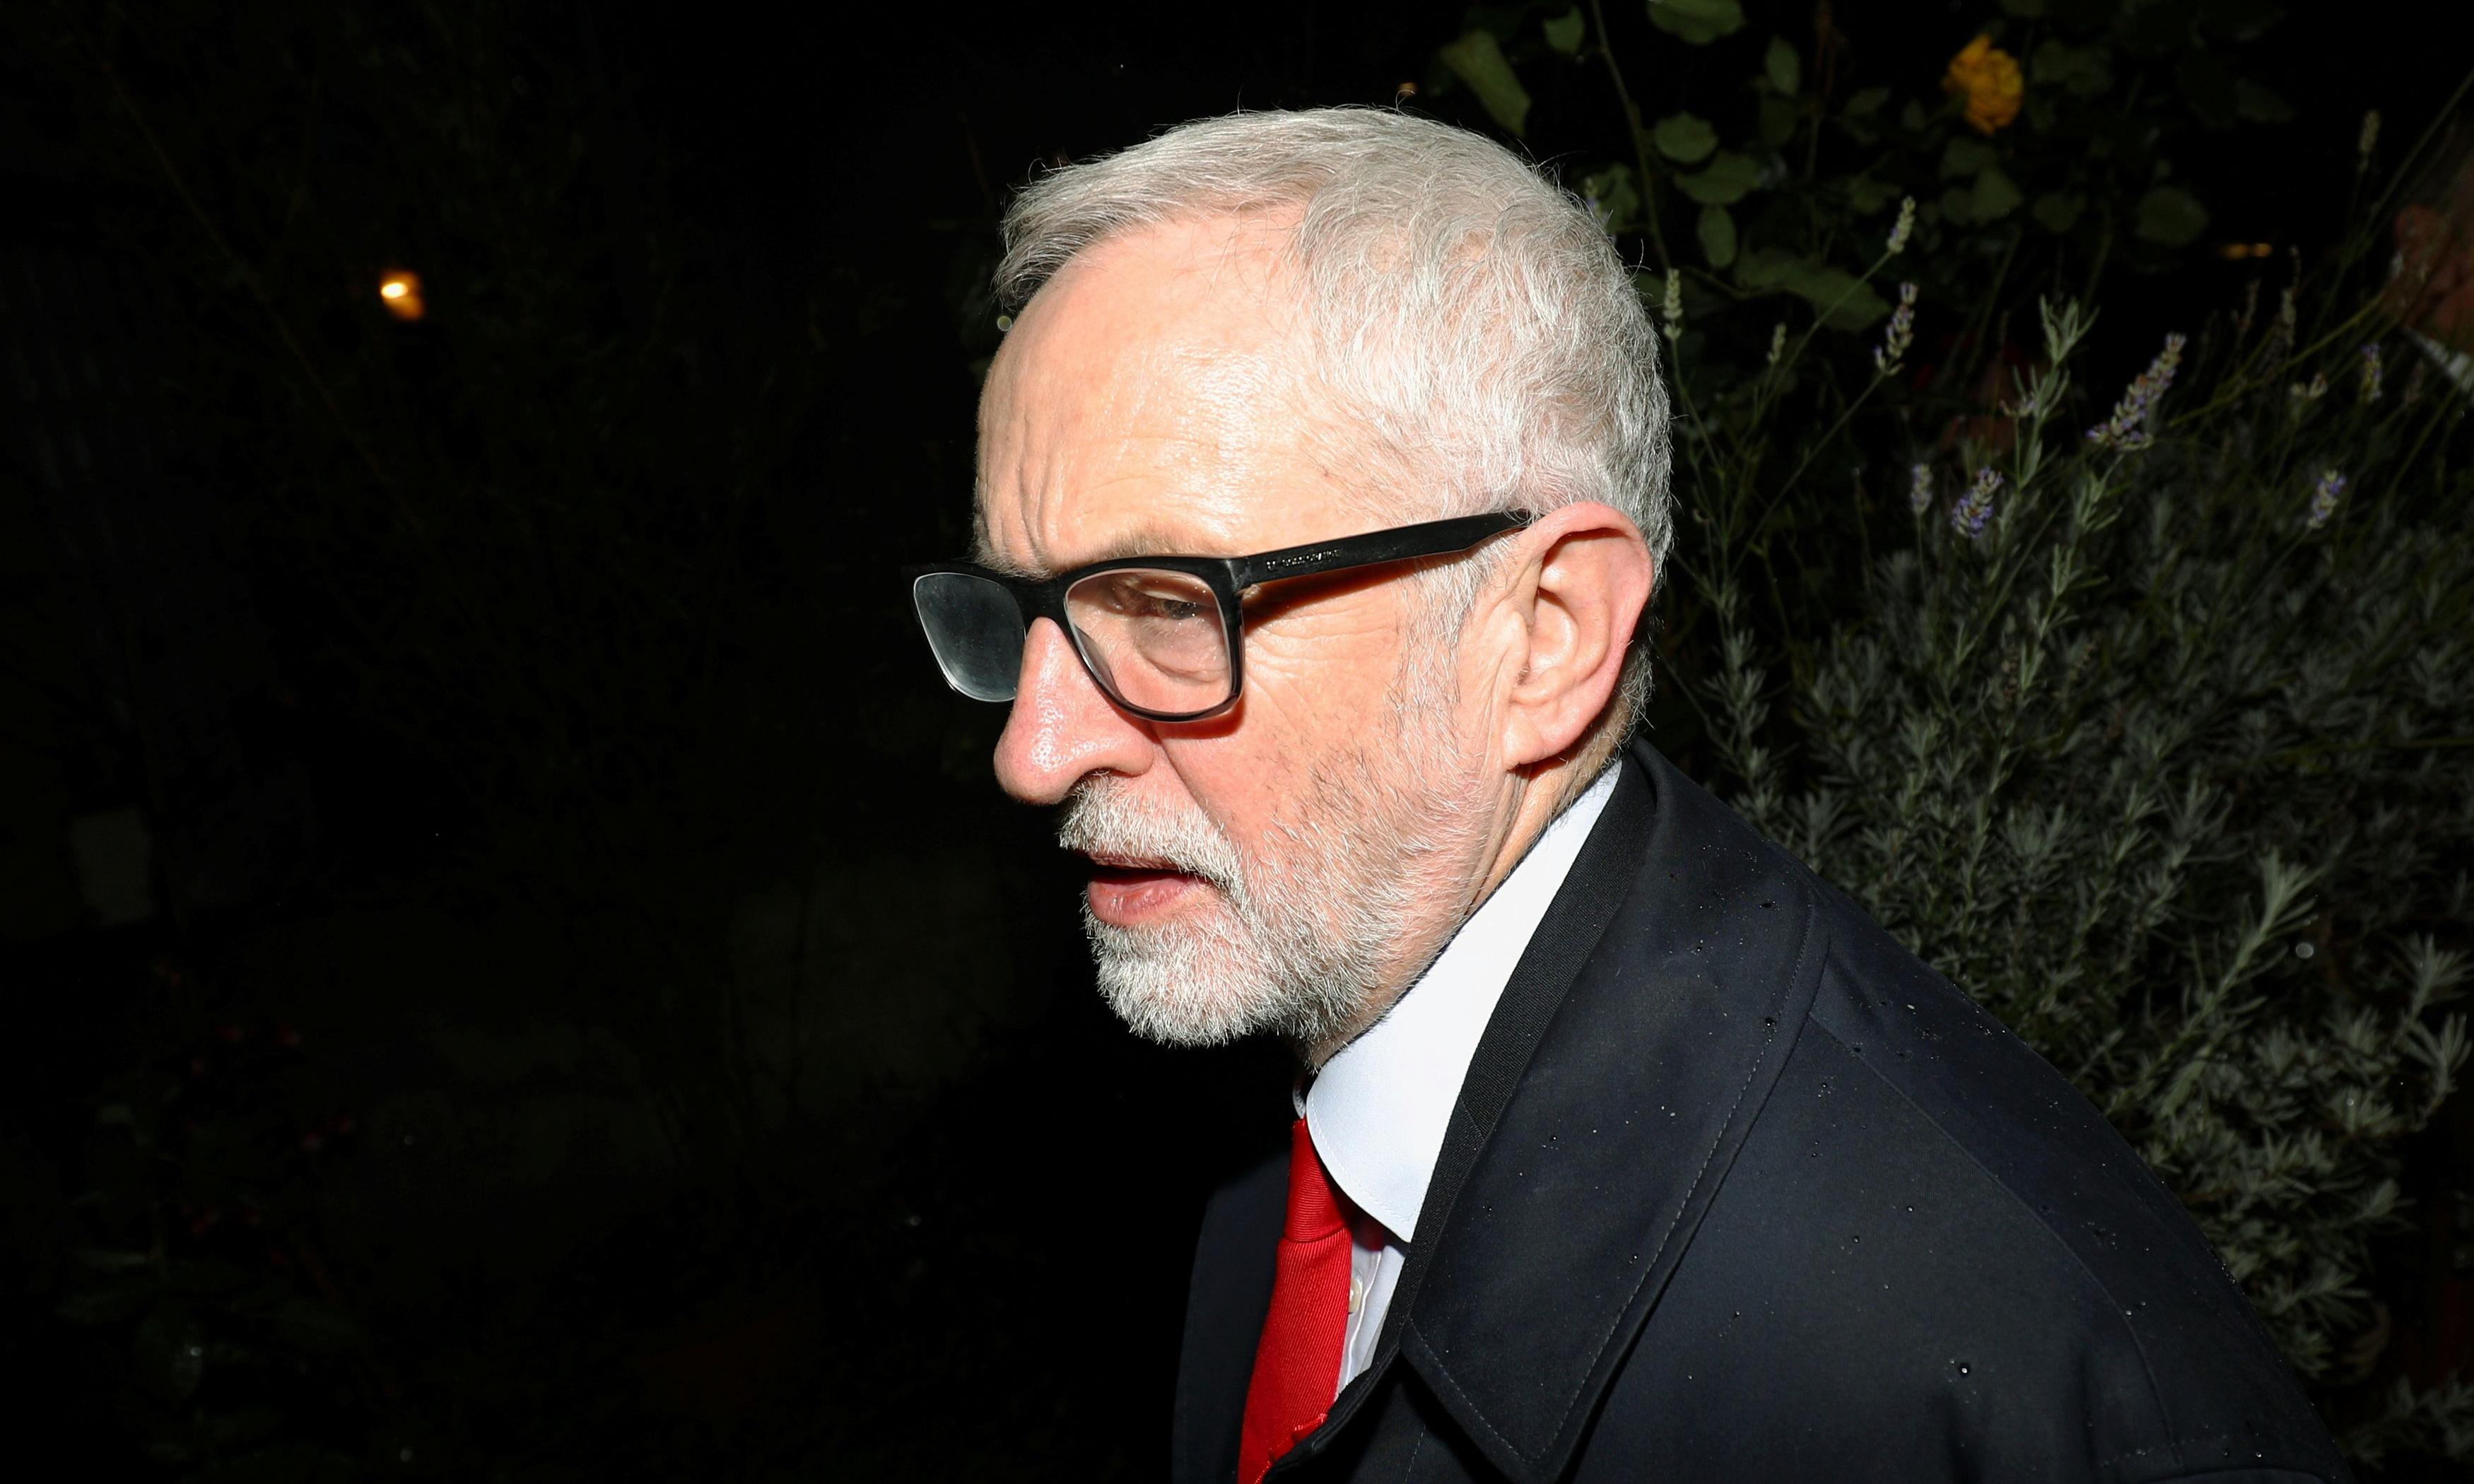 Devoid of agility, charisma and credibility, Corbyn has led Labour into the abyss